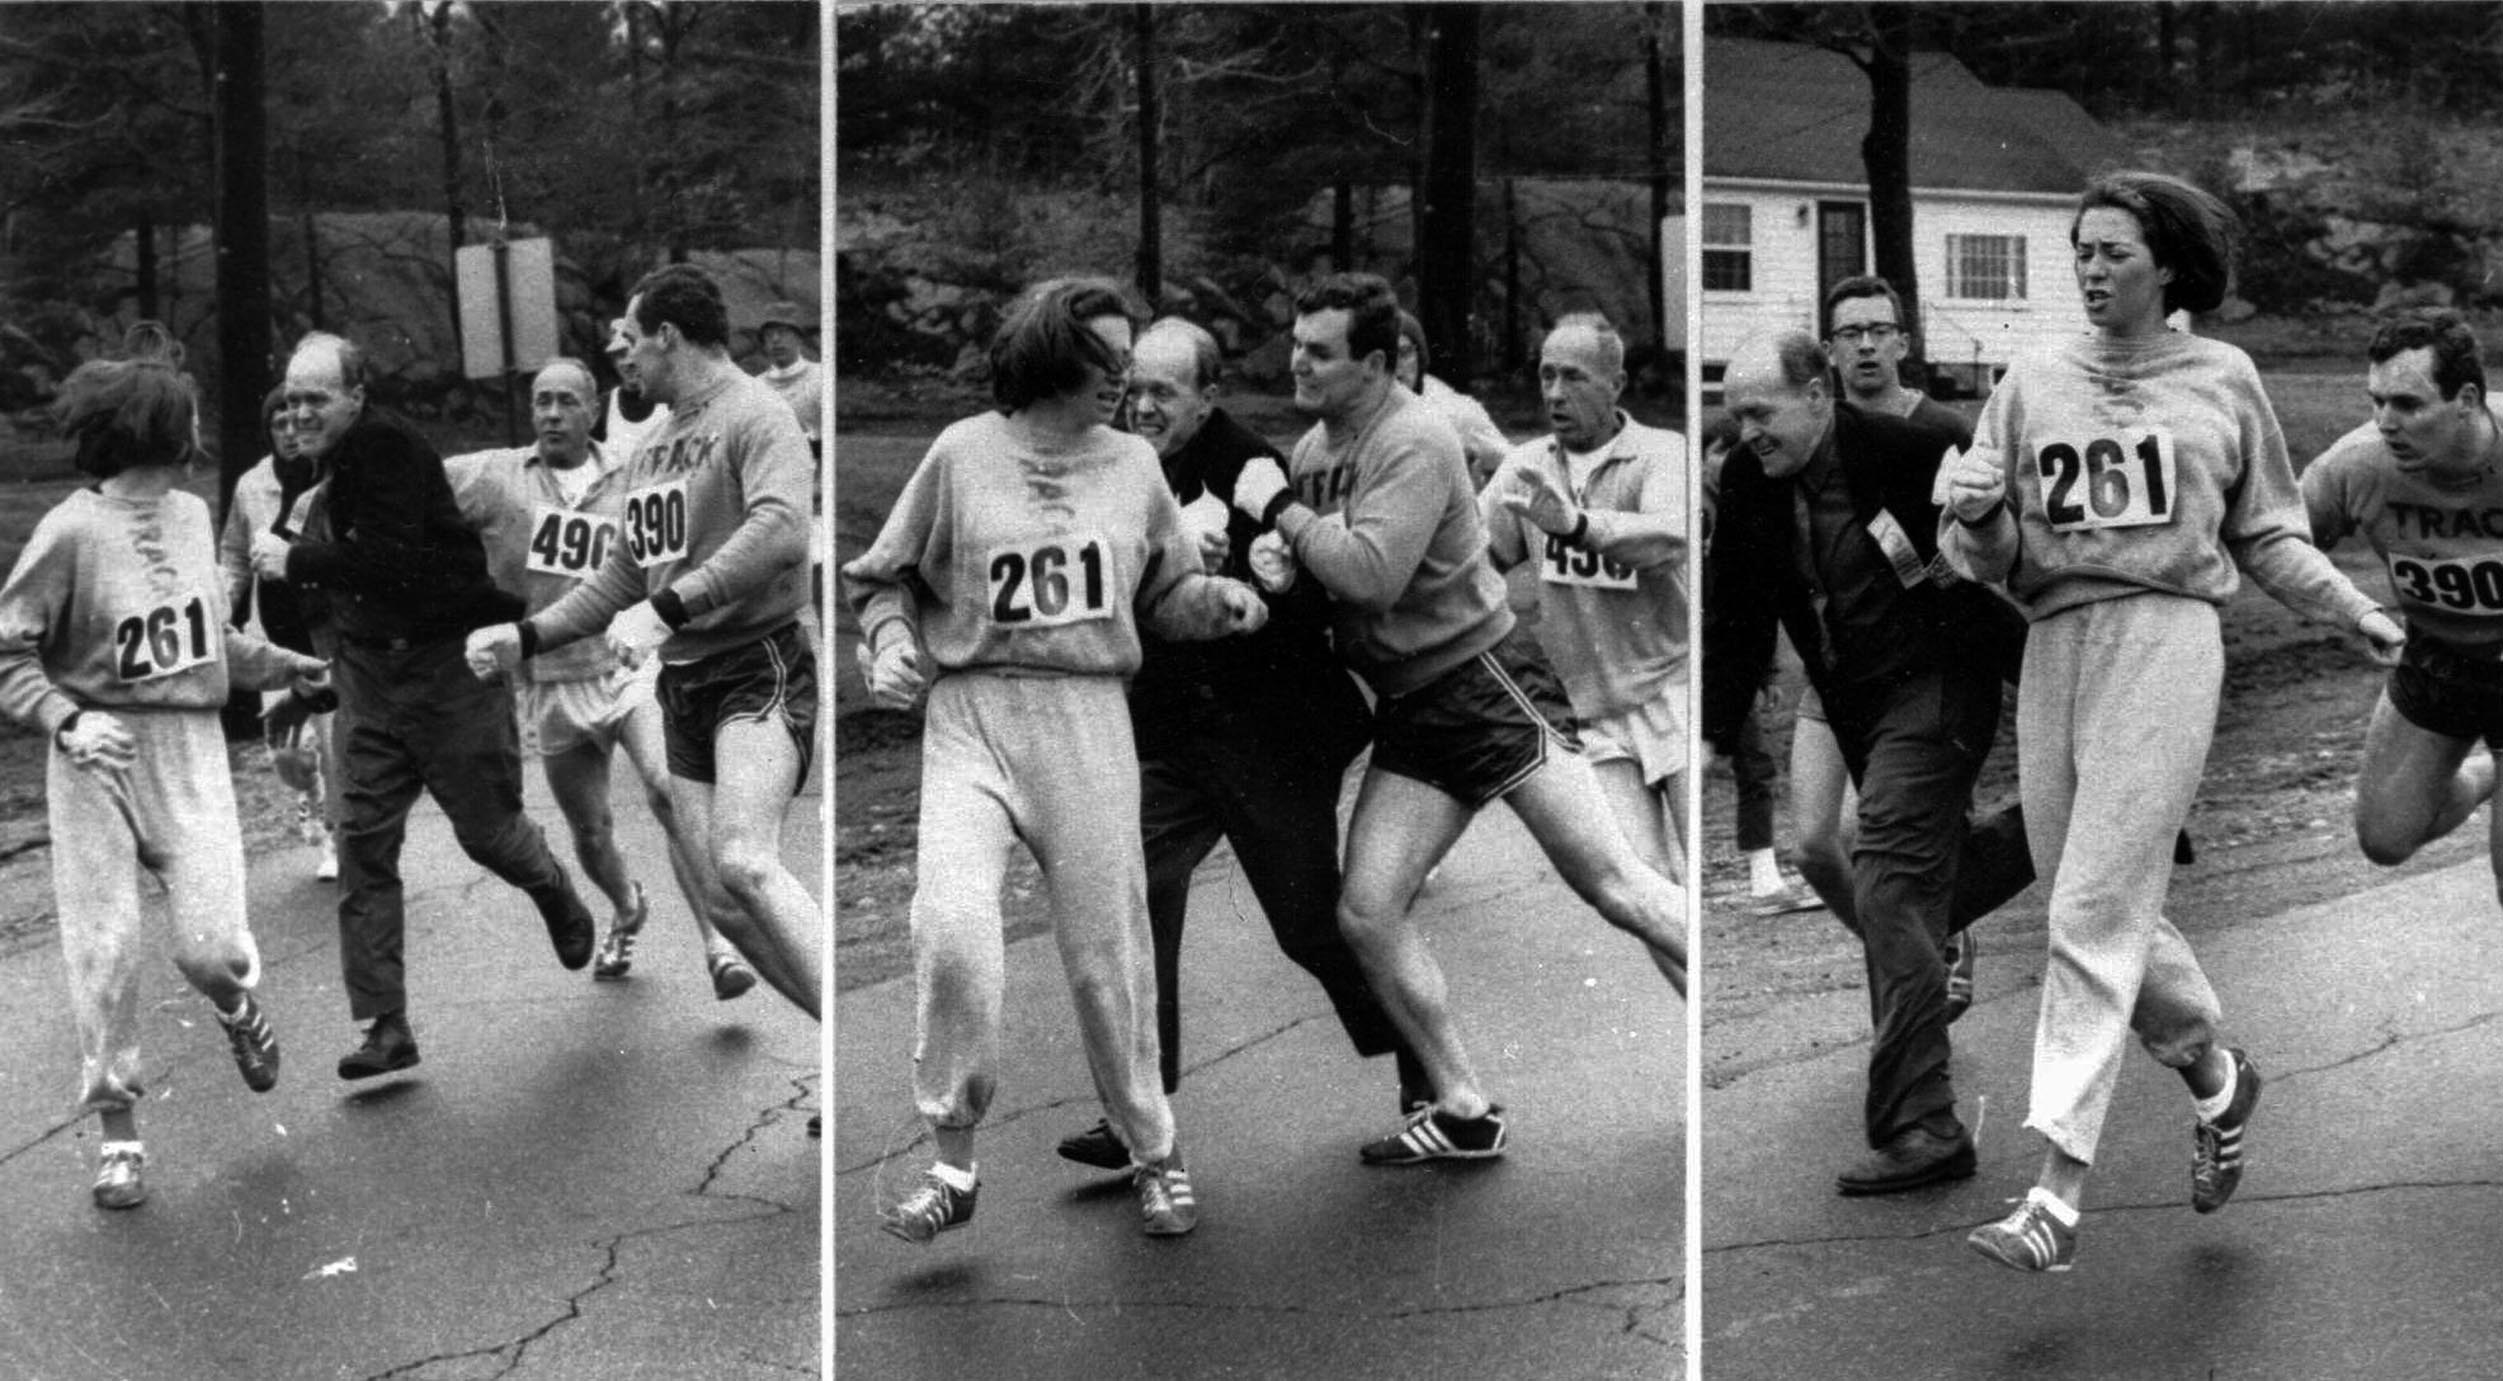 A race official during the 1967 Boston Marathon was unhappy to learn that K. V. Switzer, a Syracuse University junior at the time, was a woman competing in an all-male race. He tried to tear off her race bib but was rebuffed by Switzer's then-boyfriend, Tom Miller. (Photos by the Boston Herald)